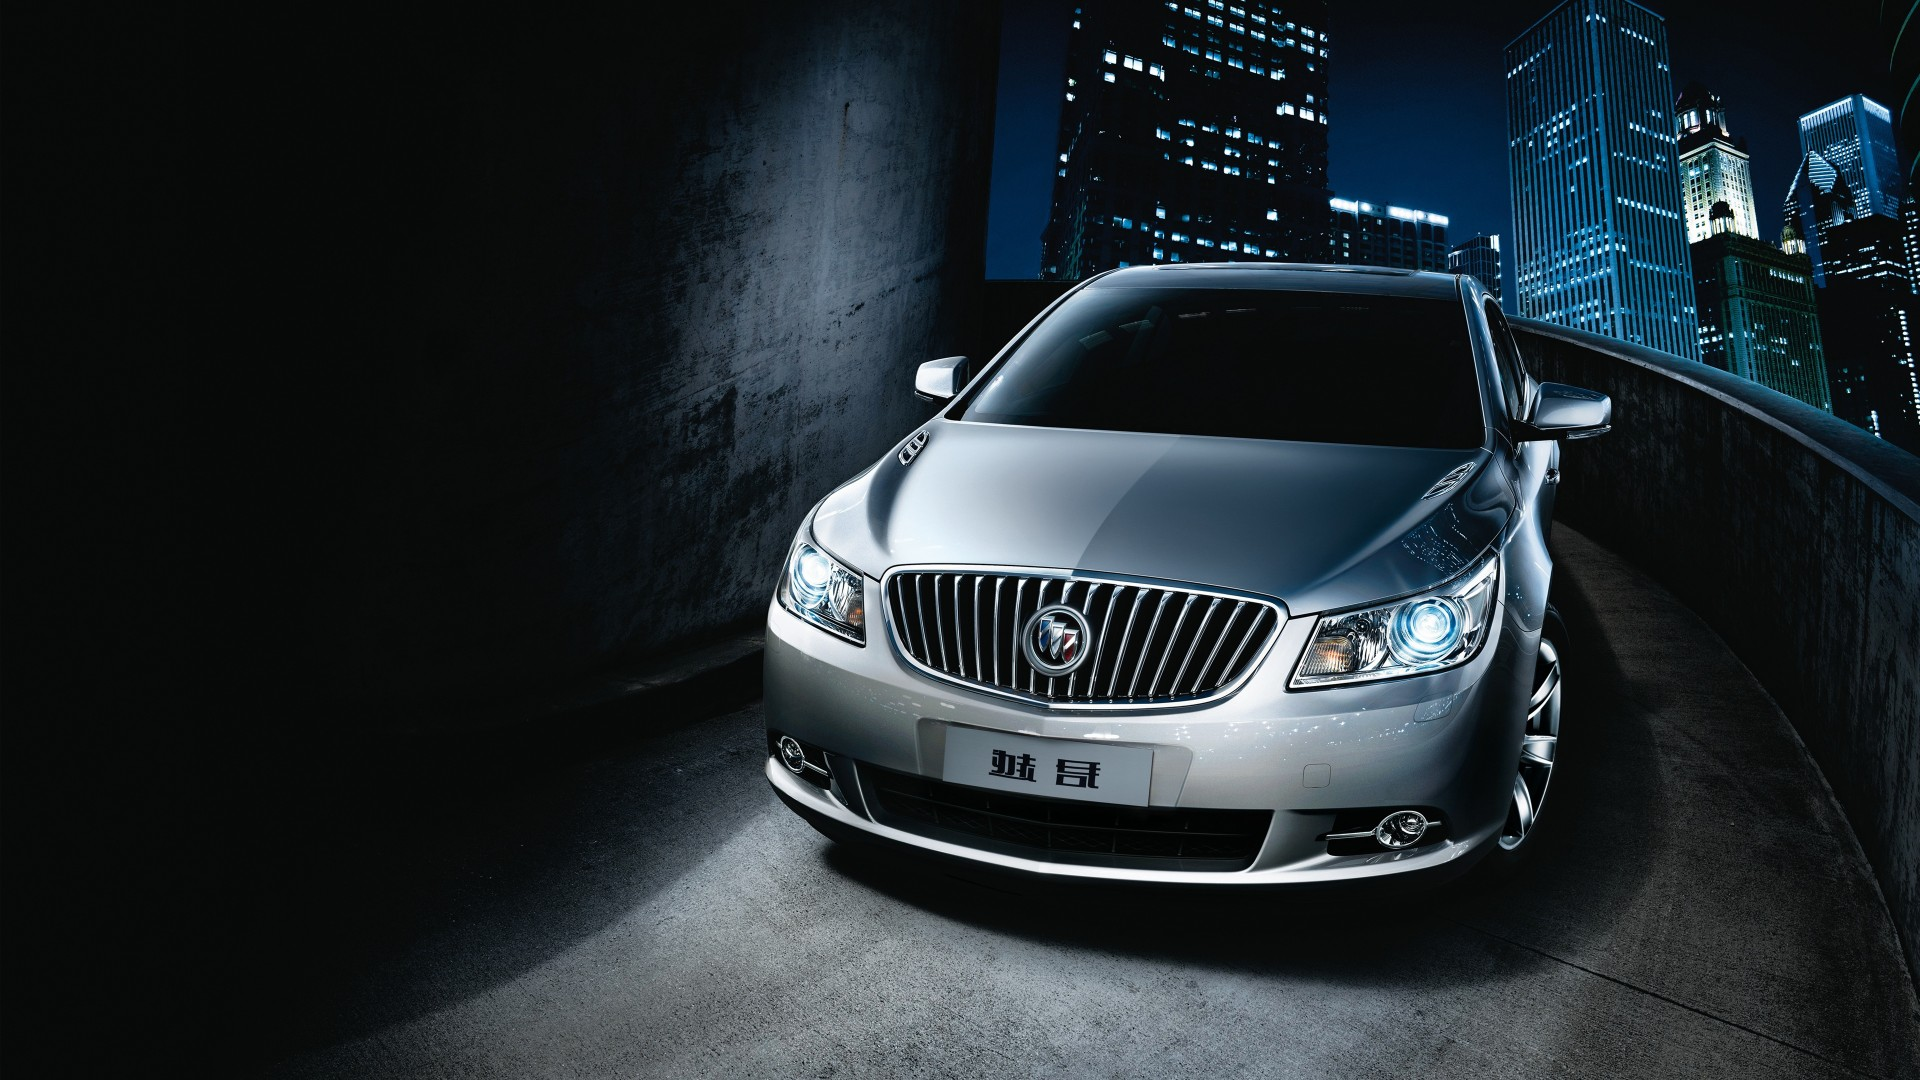 Mercedes Smart Car >> 2017 Buick LaCrosse Luxury Sedan Wallpaper | HD Car ...